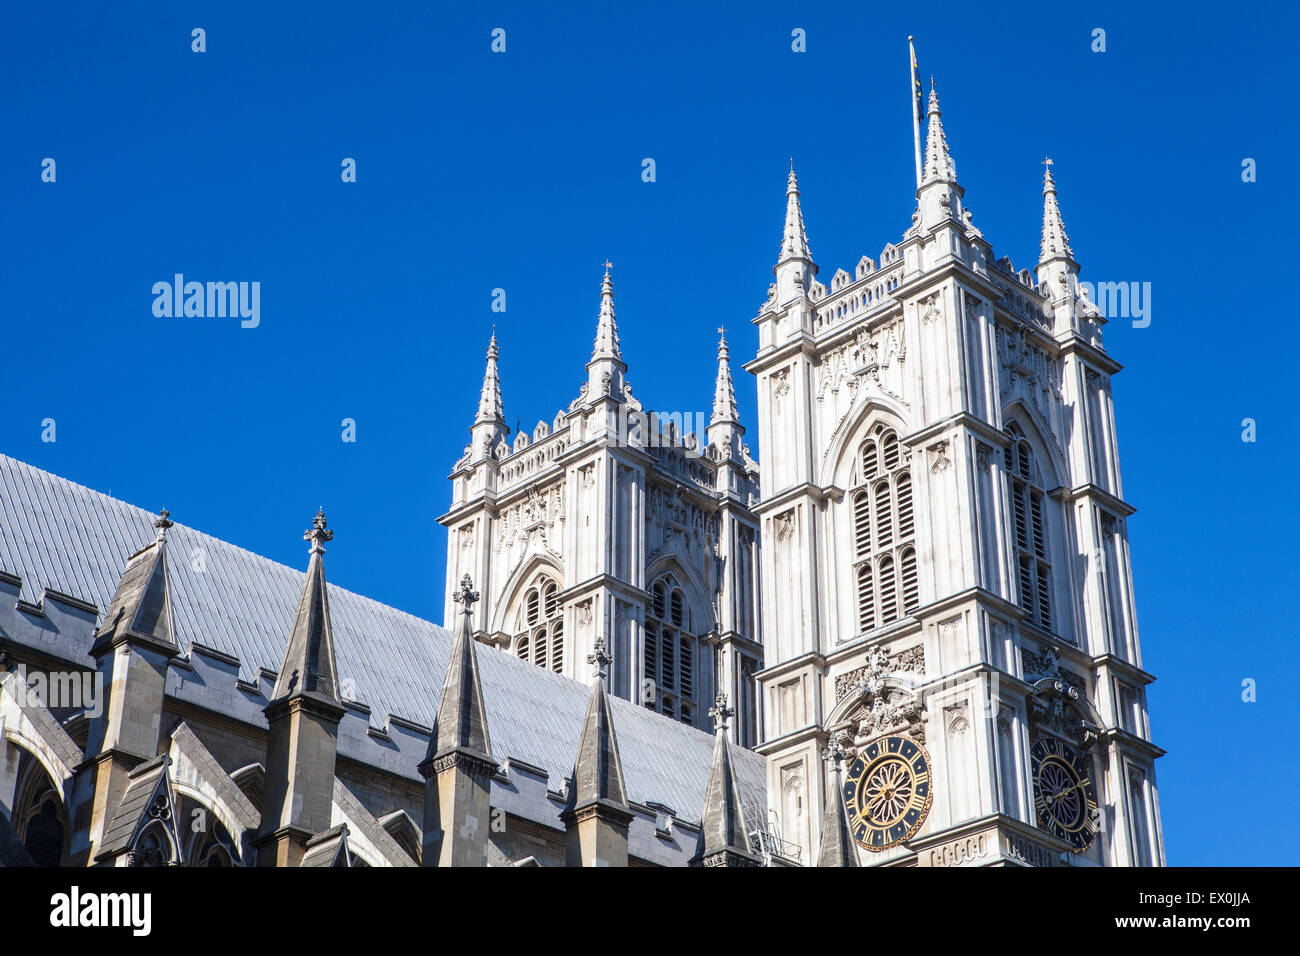 A view of the beautiful Westminster Abbey in London. - Stock Image